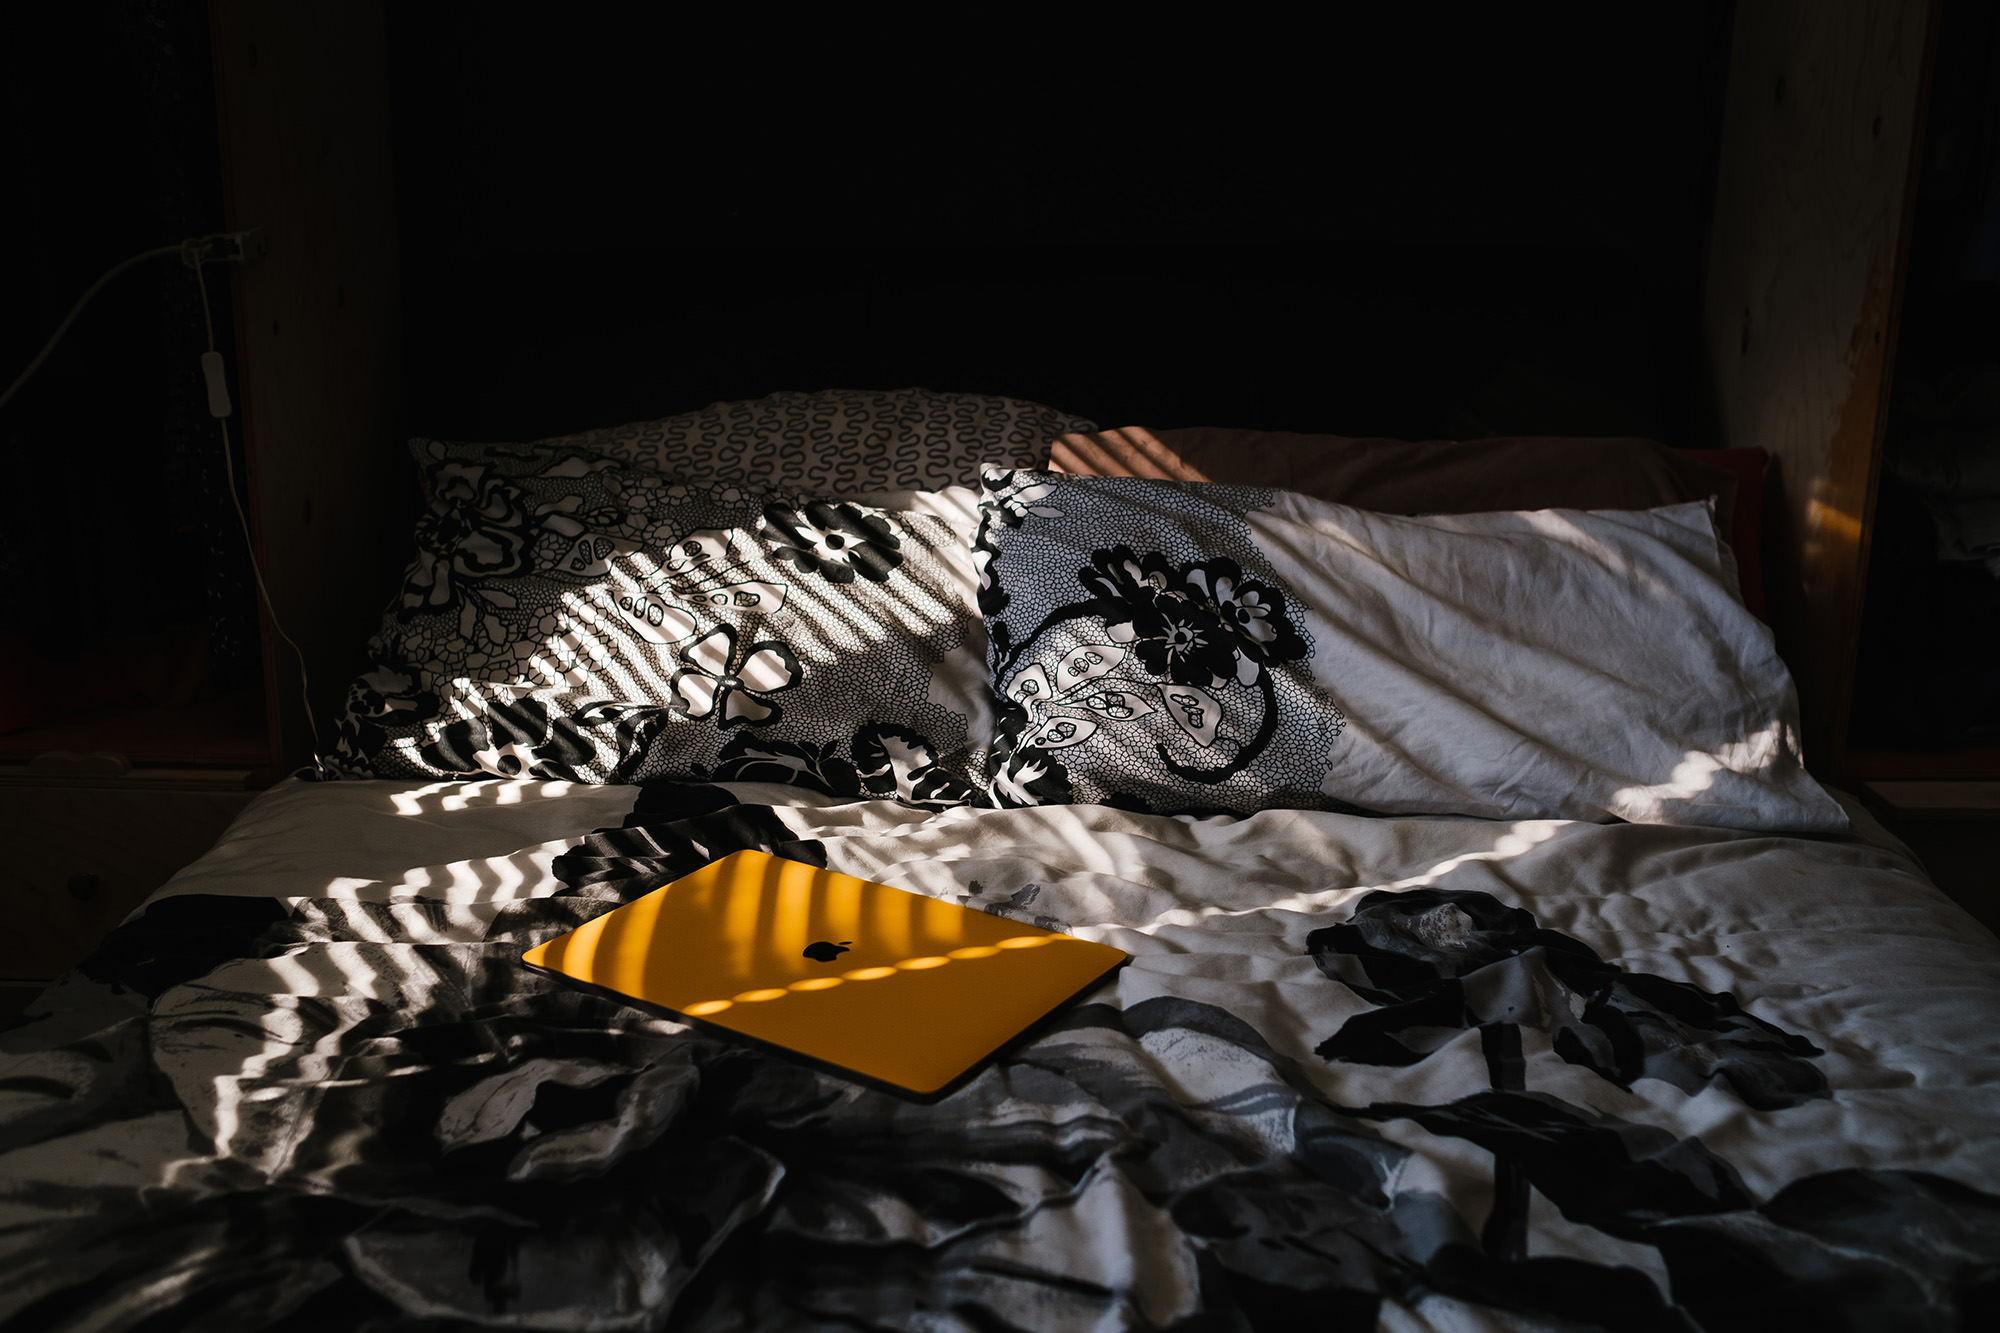 sunlight details on bed